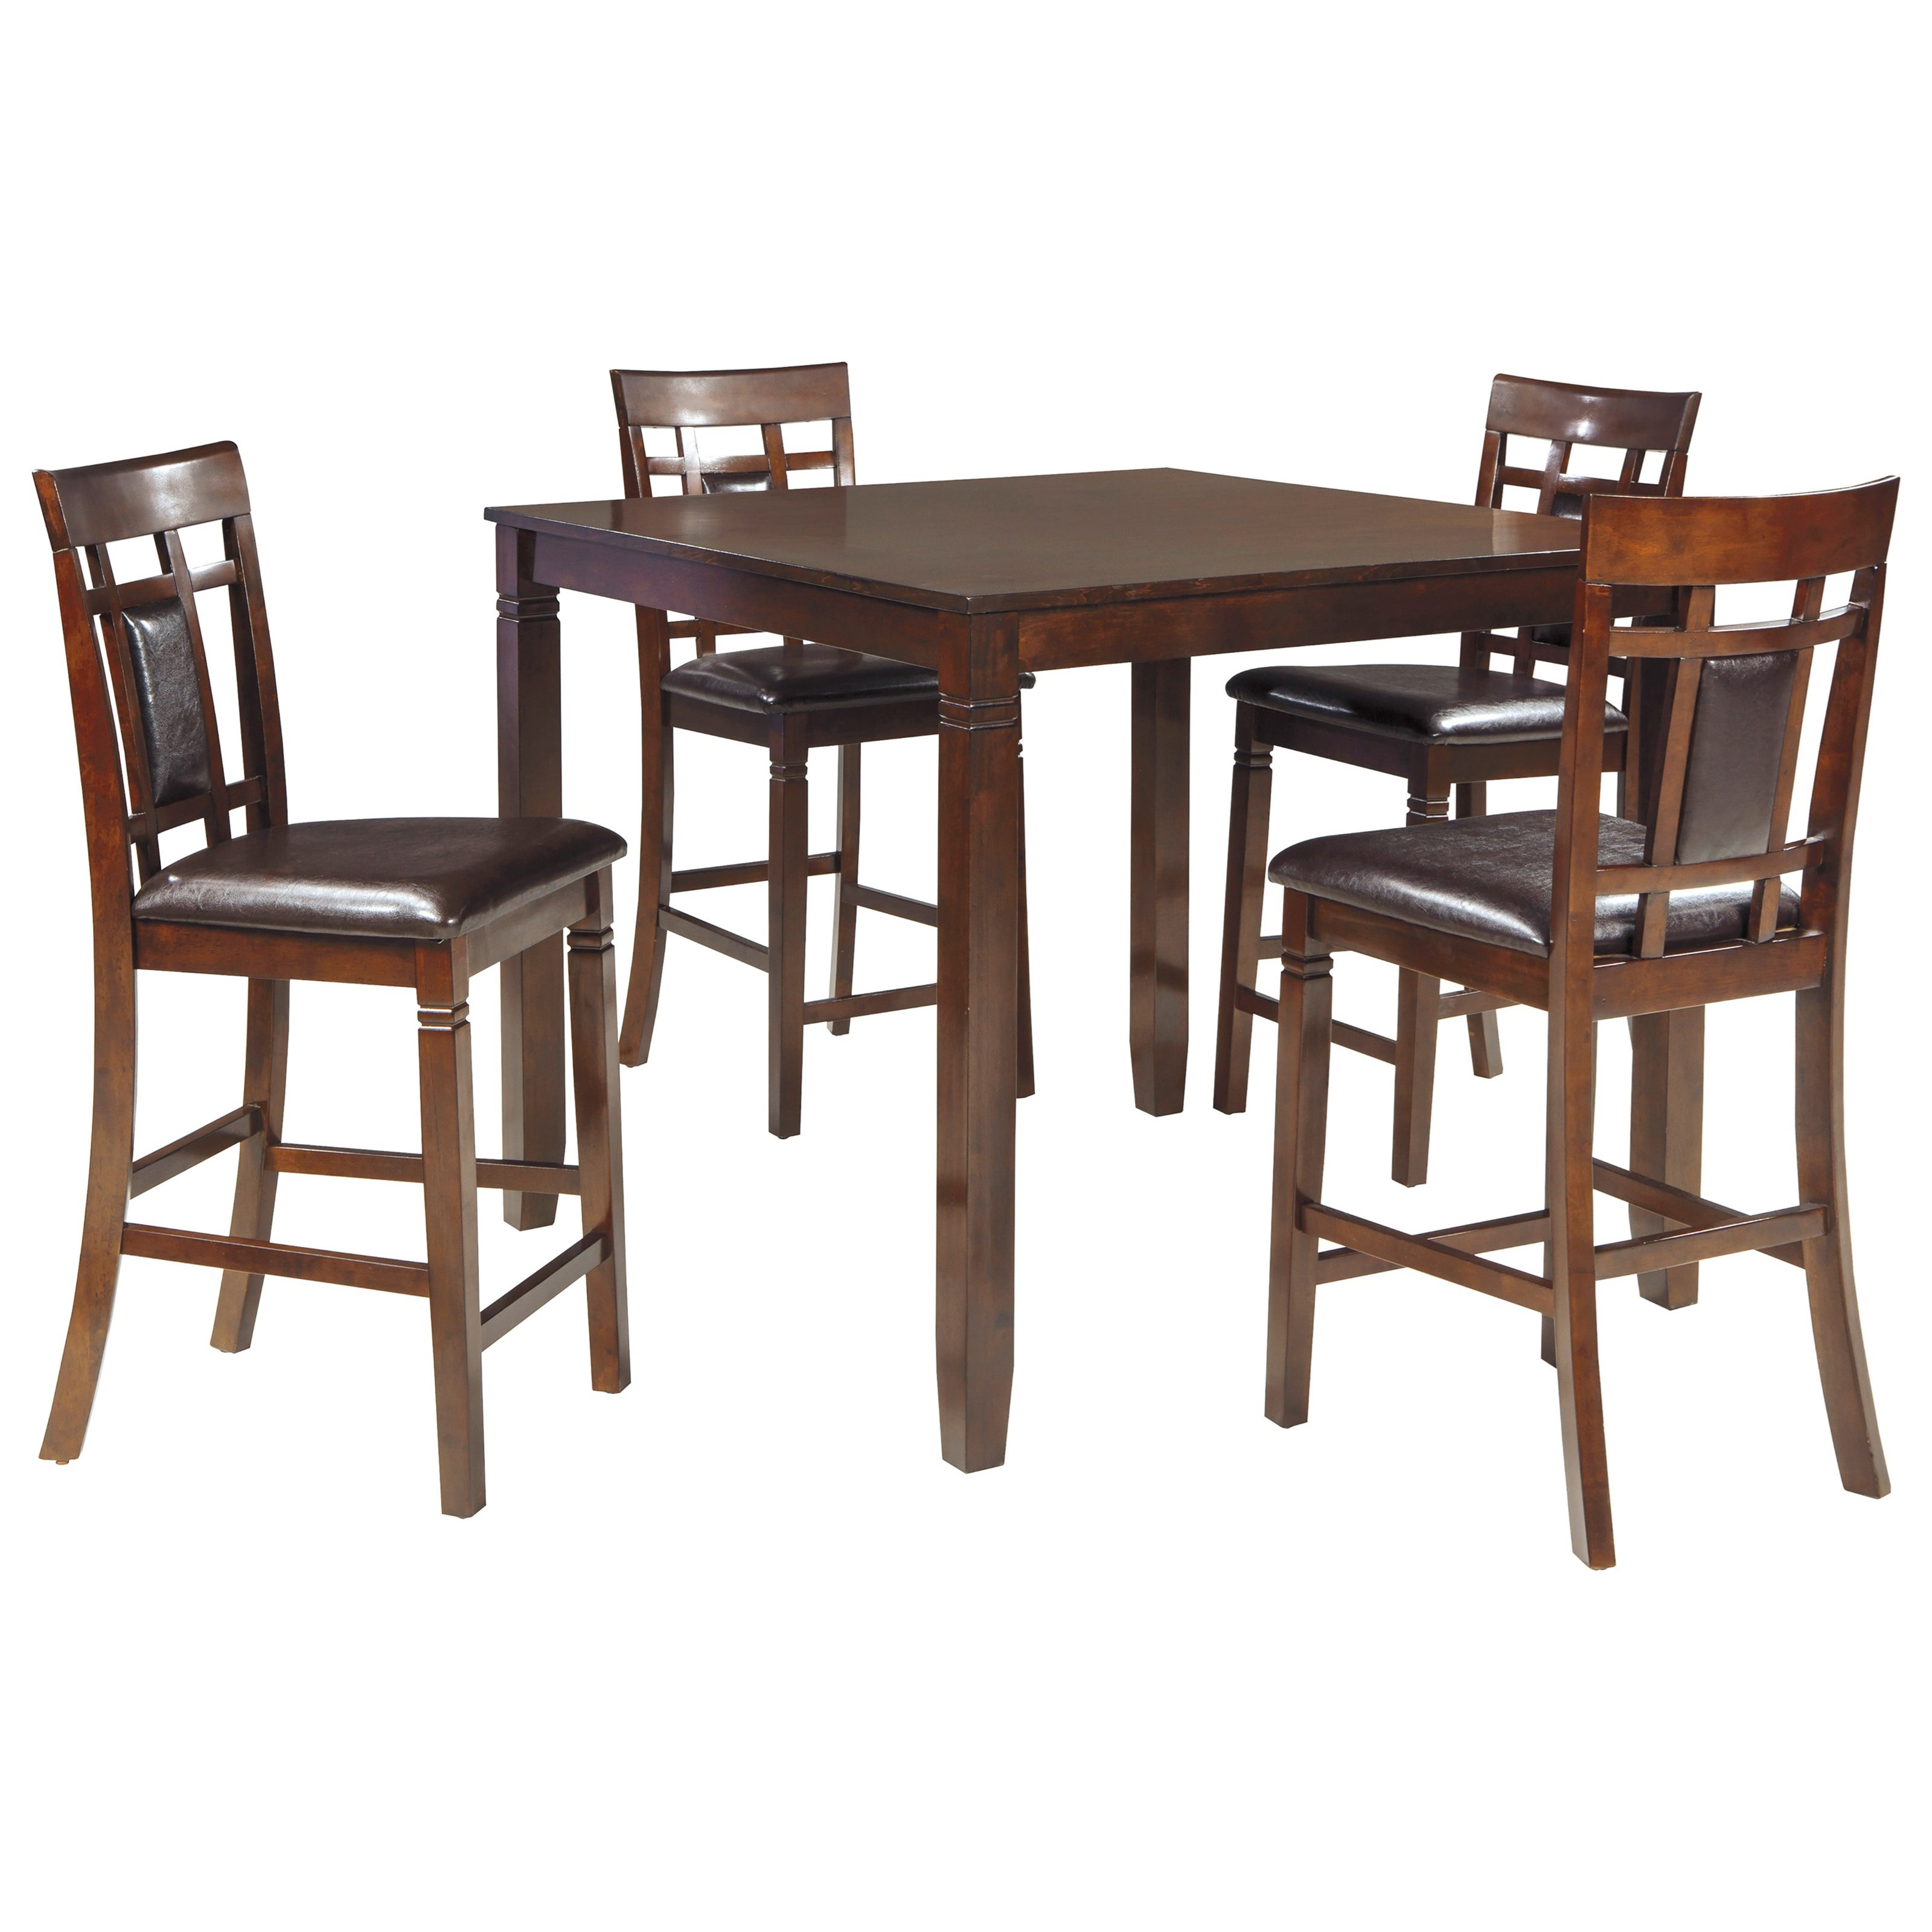 Bennox 5-Piece Dining Room Counter Table Set by Signature Design by Ashley at Sparks HomeStore